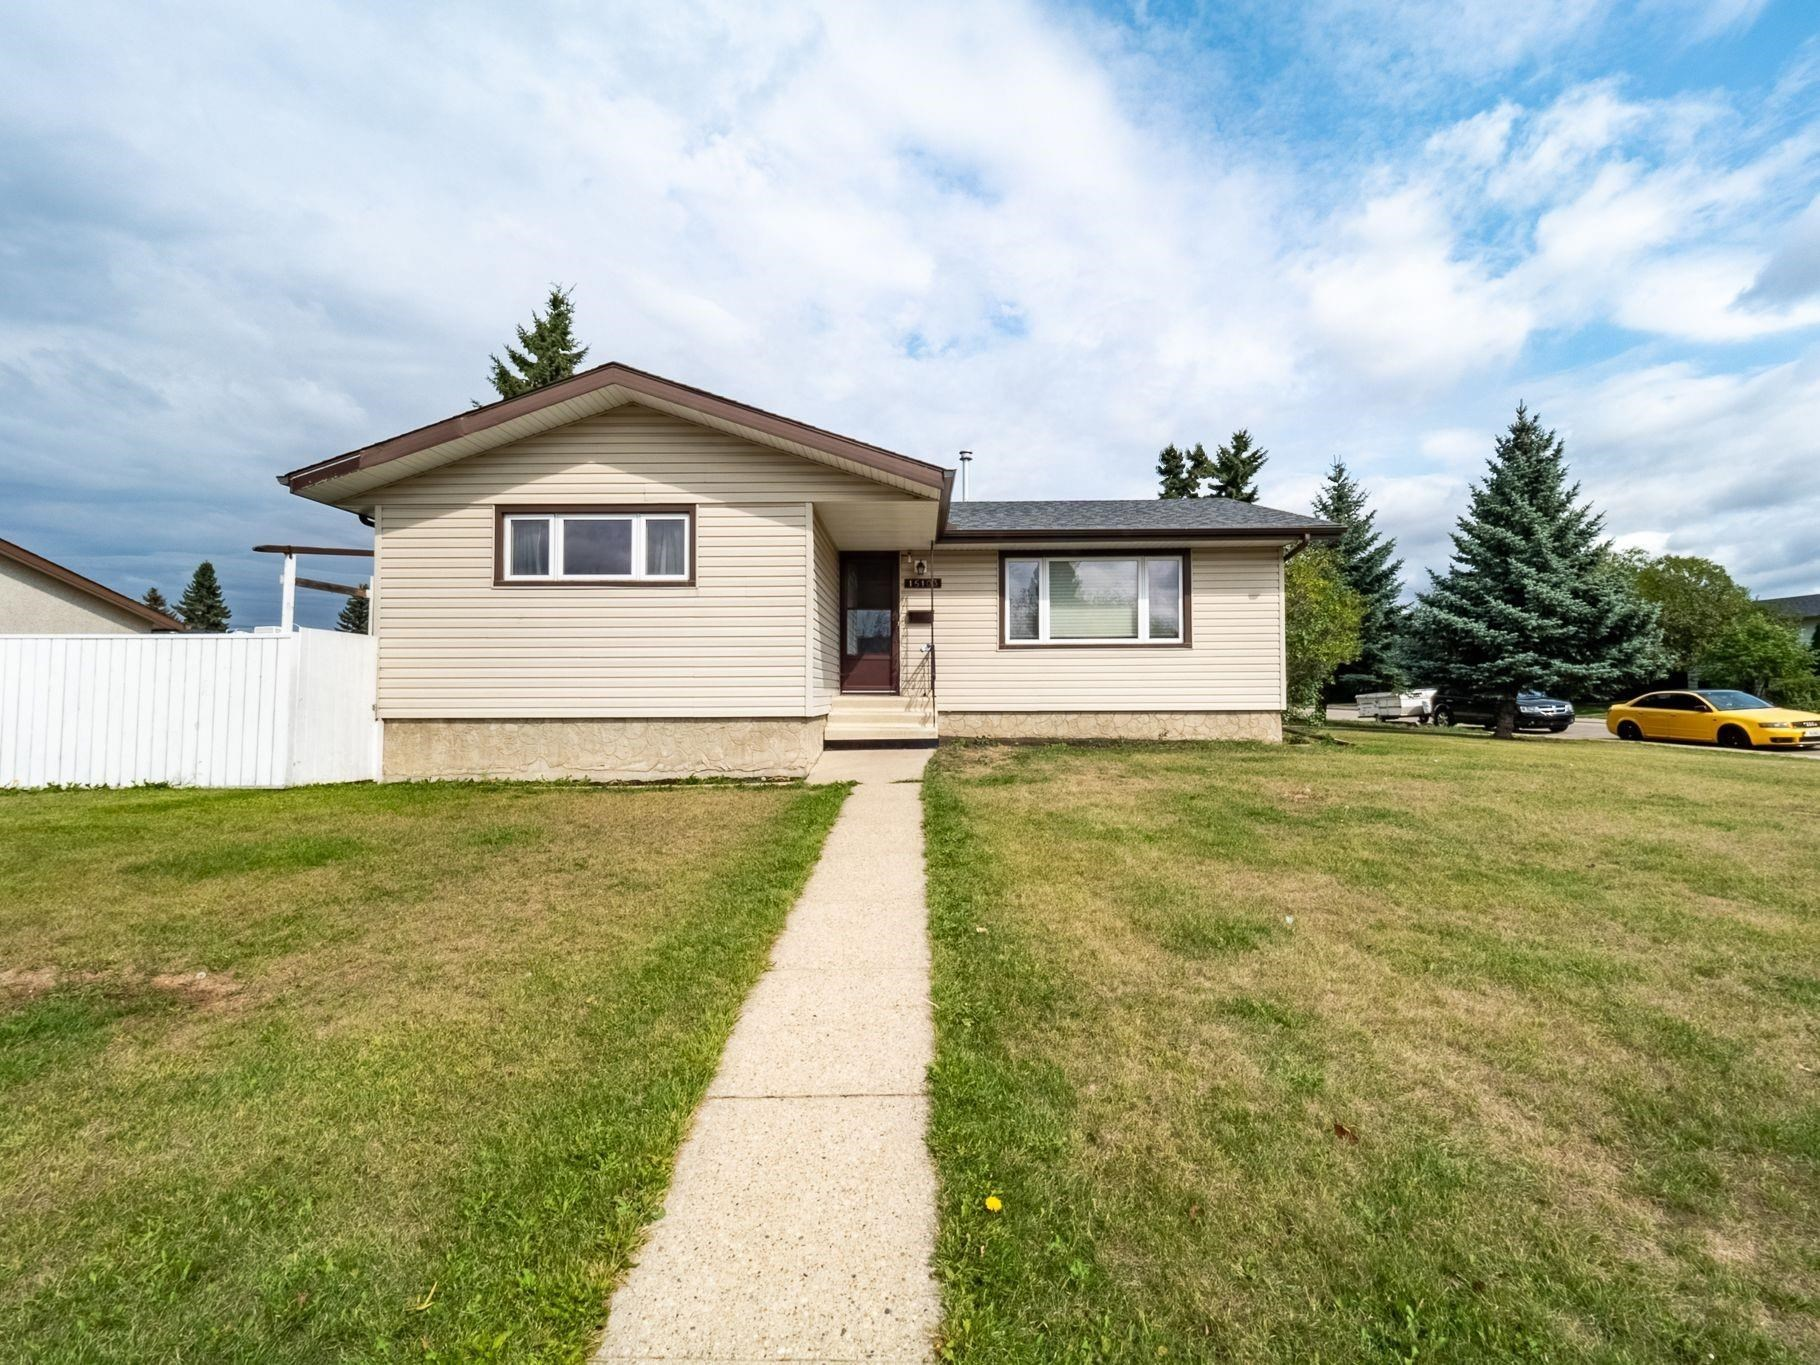 Welcome home to this 1085 square foot 3 bedroom 2 ½ bath bungalow in the friendly neighbourhood of Evansdale. The perfect home for the young family starting out. Has a fully finished basement with a large recreation room, large den with window and 3-piece bathroom. The main floor has a nice eat in kitchen and upgraded flooring along with a 2-piece ensuite off the primary bedroom. This home has newer windows and a newer roof along with upgraded interior doors. And yes, it has a 23 x 21 detached double garage and full-size driveway. An amazing family home that is literally walking distance to Evansdale school. Great value and easy to show.